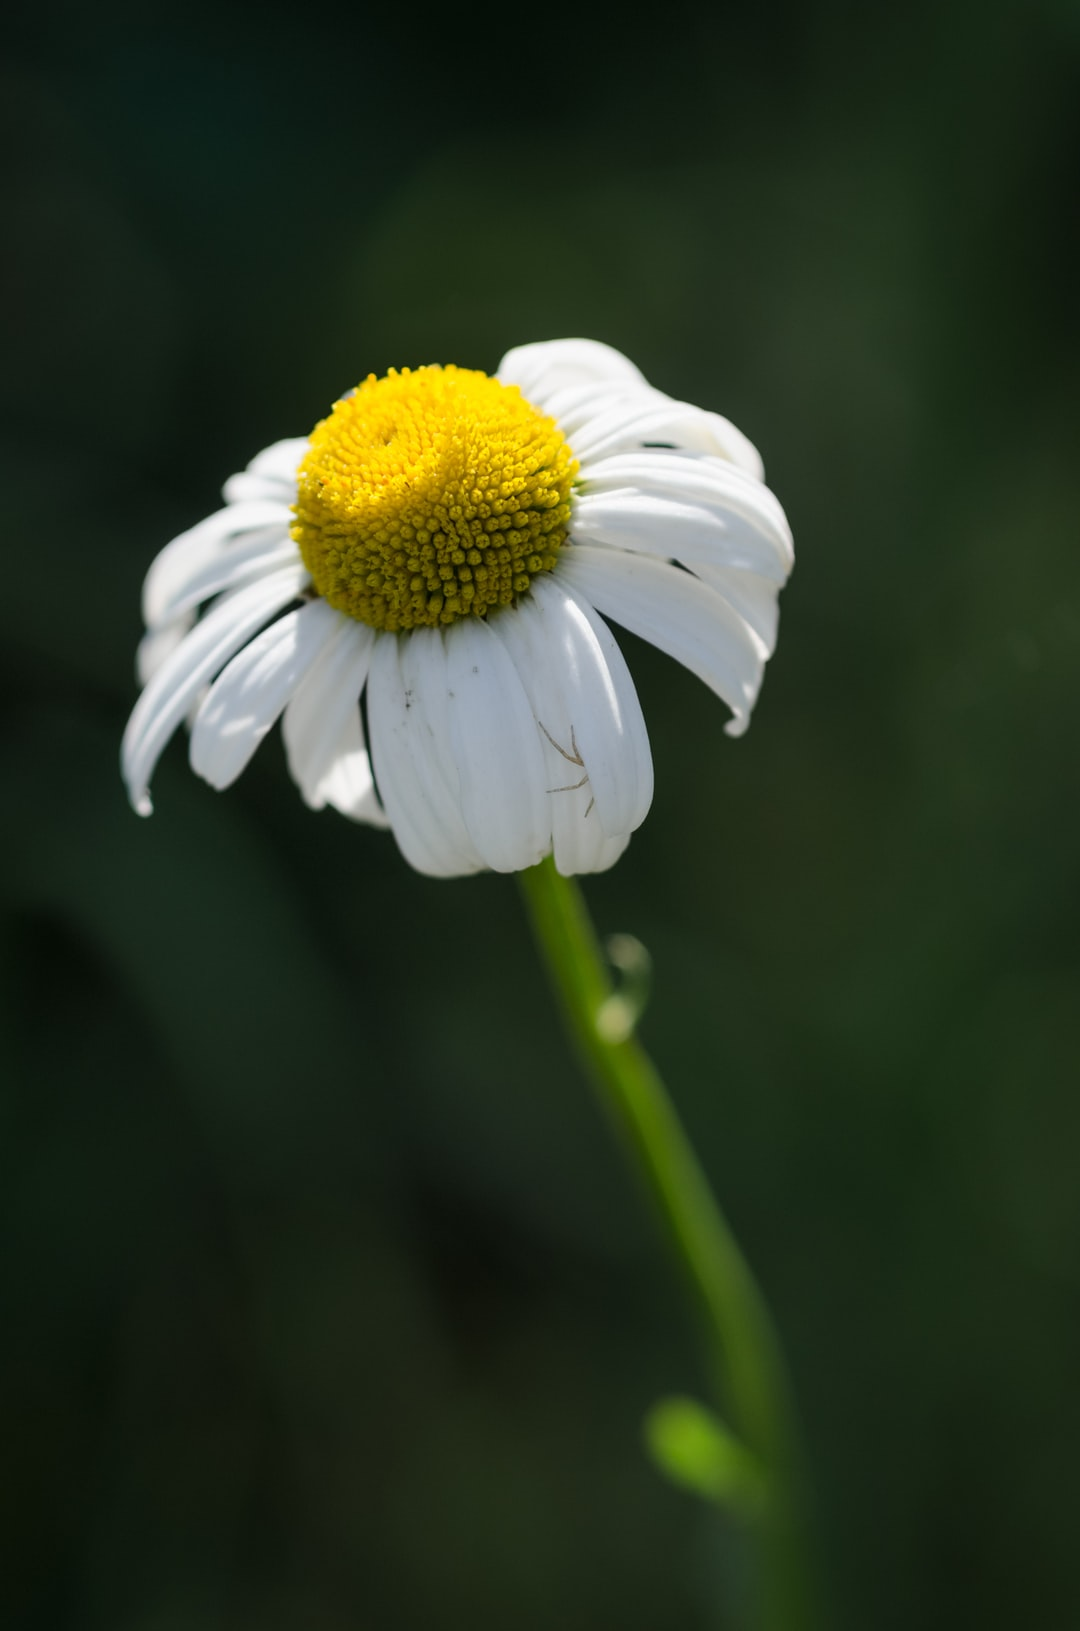 Close-up of a daisy flower, Bellis perennis